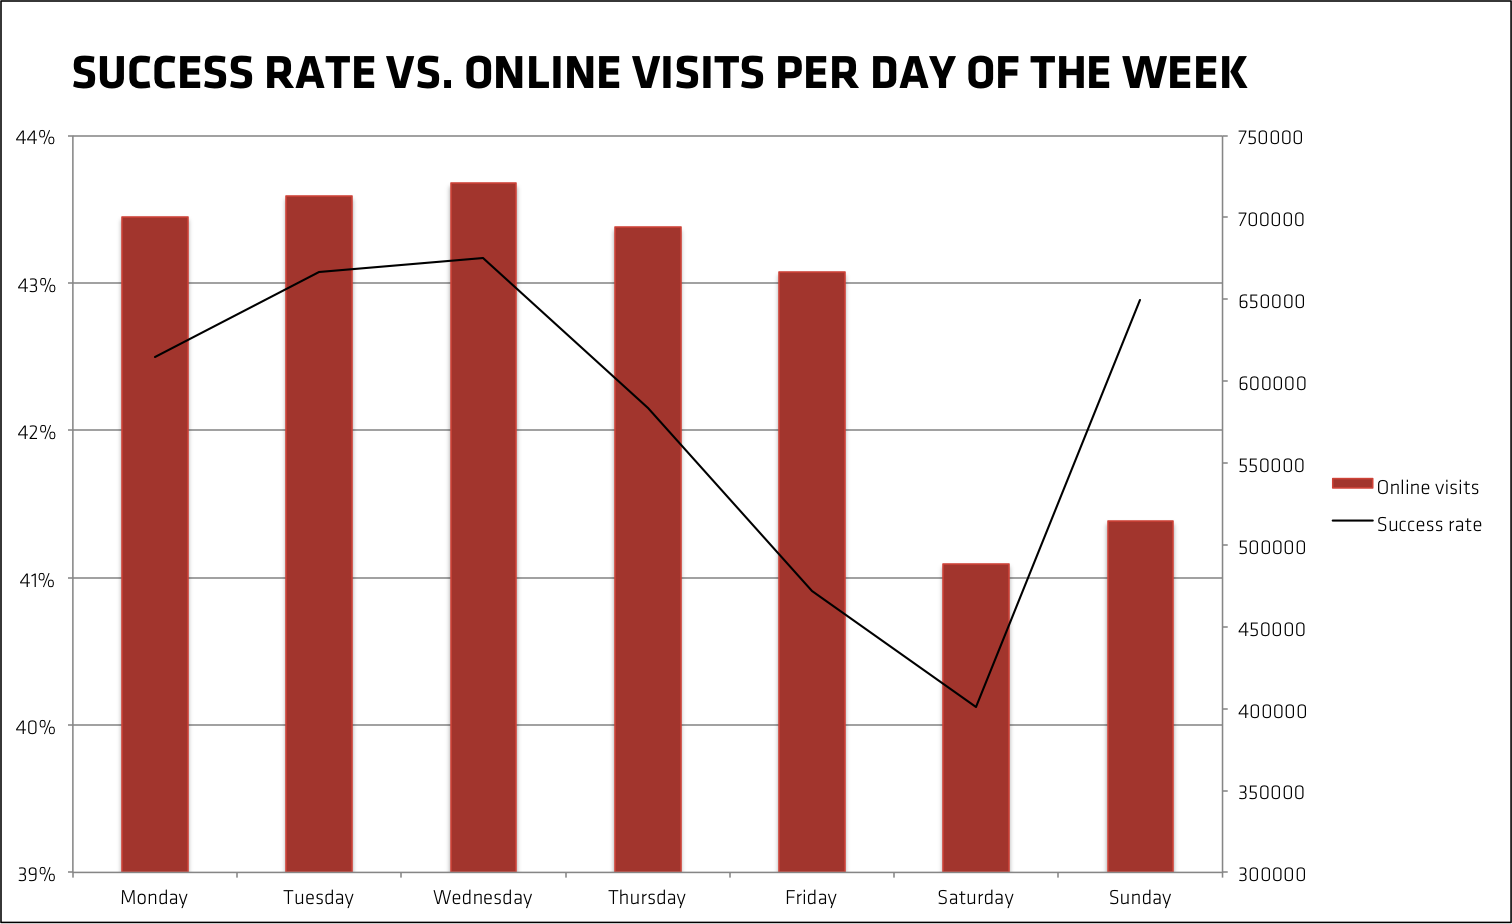 Success rate of Kickstarter projects versus online visits per day of the week